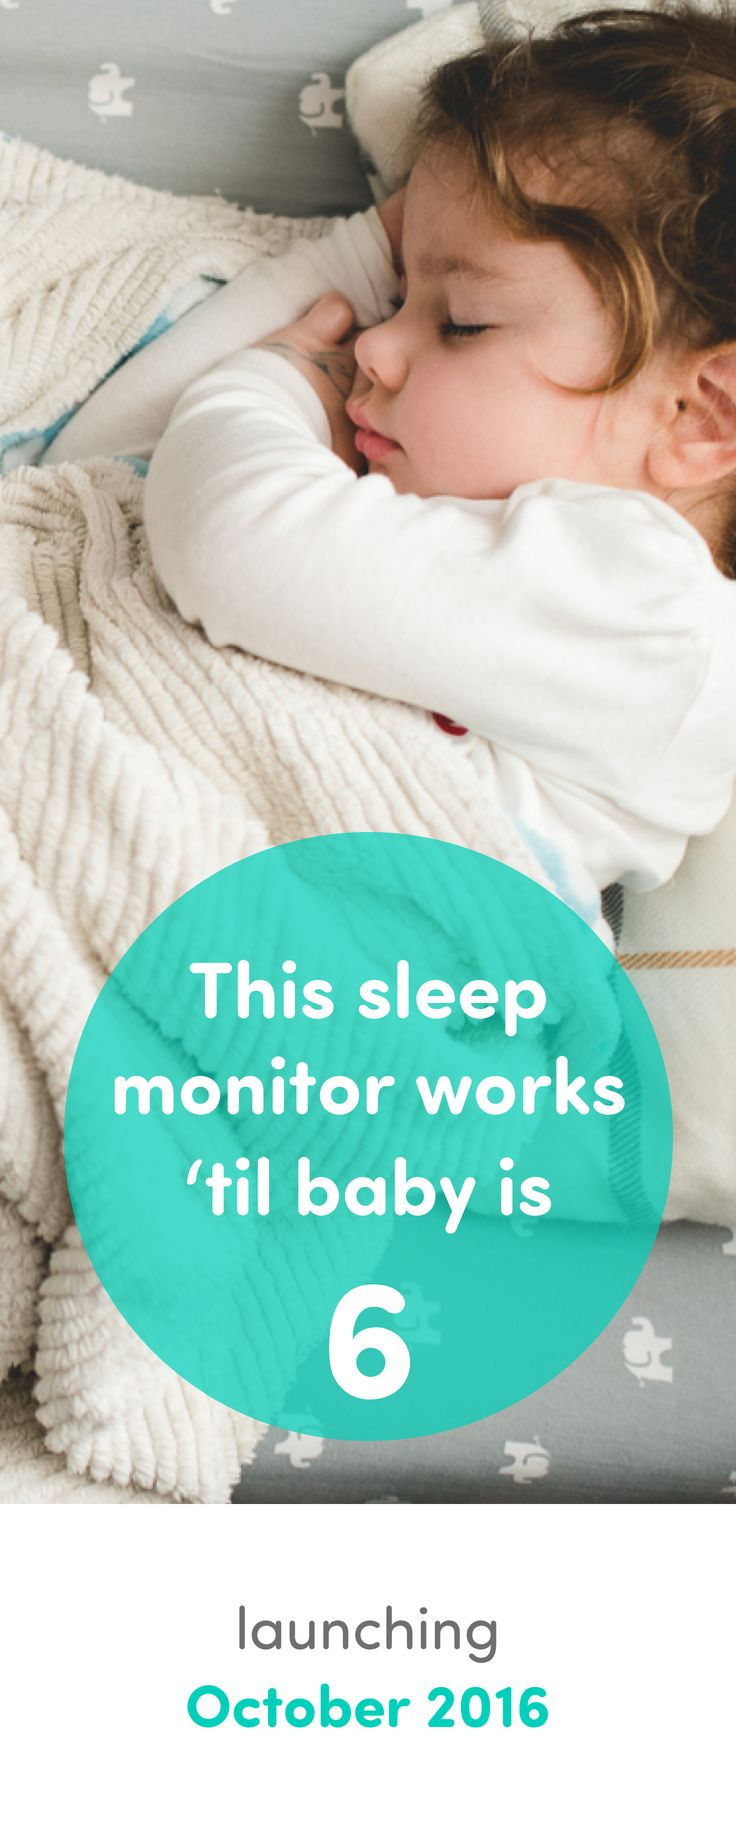 Best. Monitor. Ever. It tracks sleeping AND breathing. And all without wearables. This is a parenting game changer!